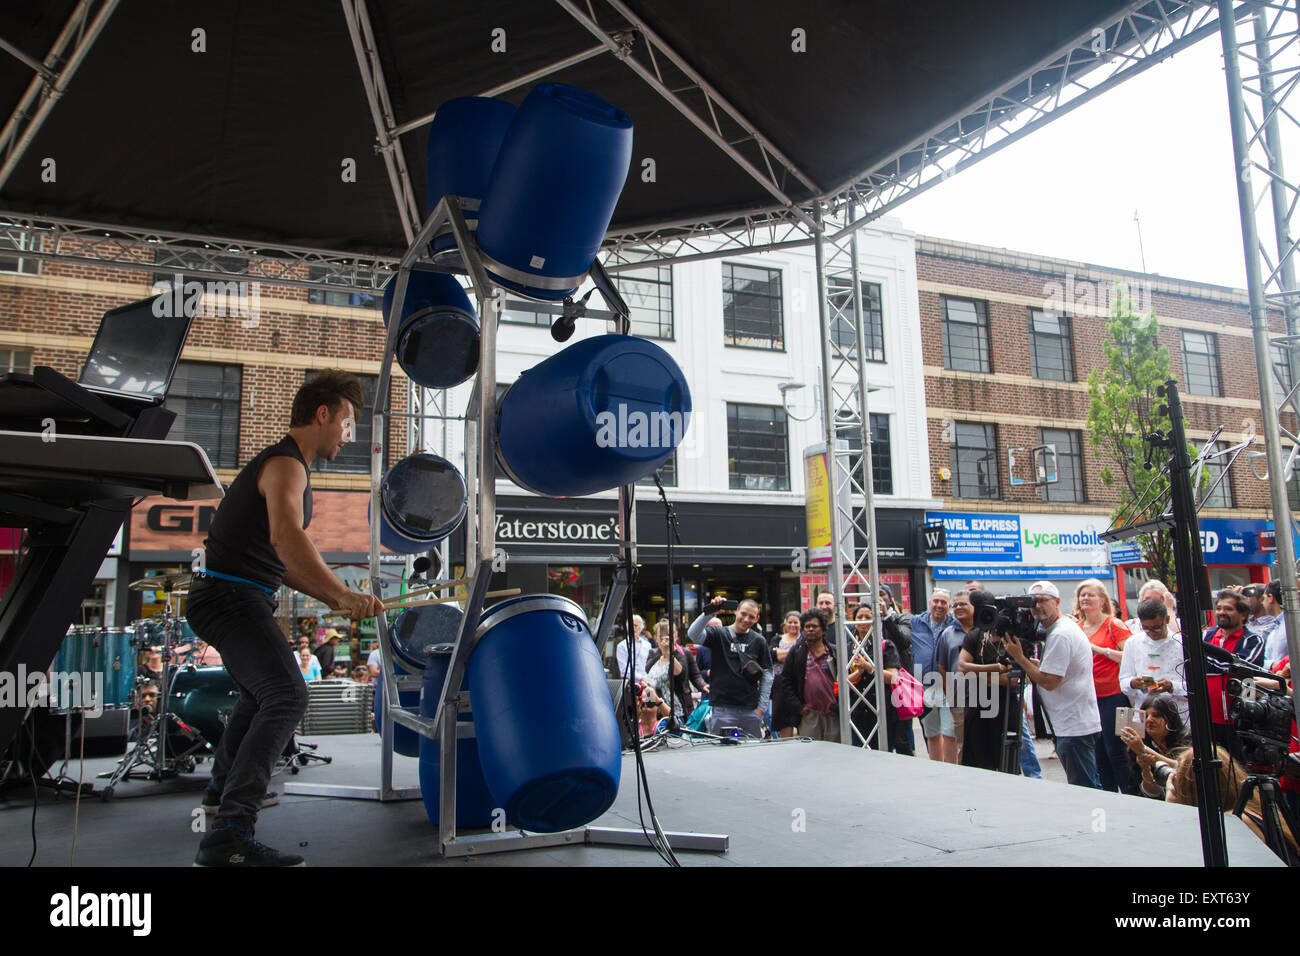 London, UK. 16th July 2015. Ben Walsh performs during 'The Streets' community cultural event as it launches in Ilford, Stock Photo